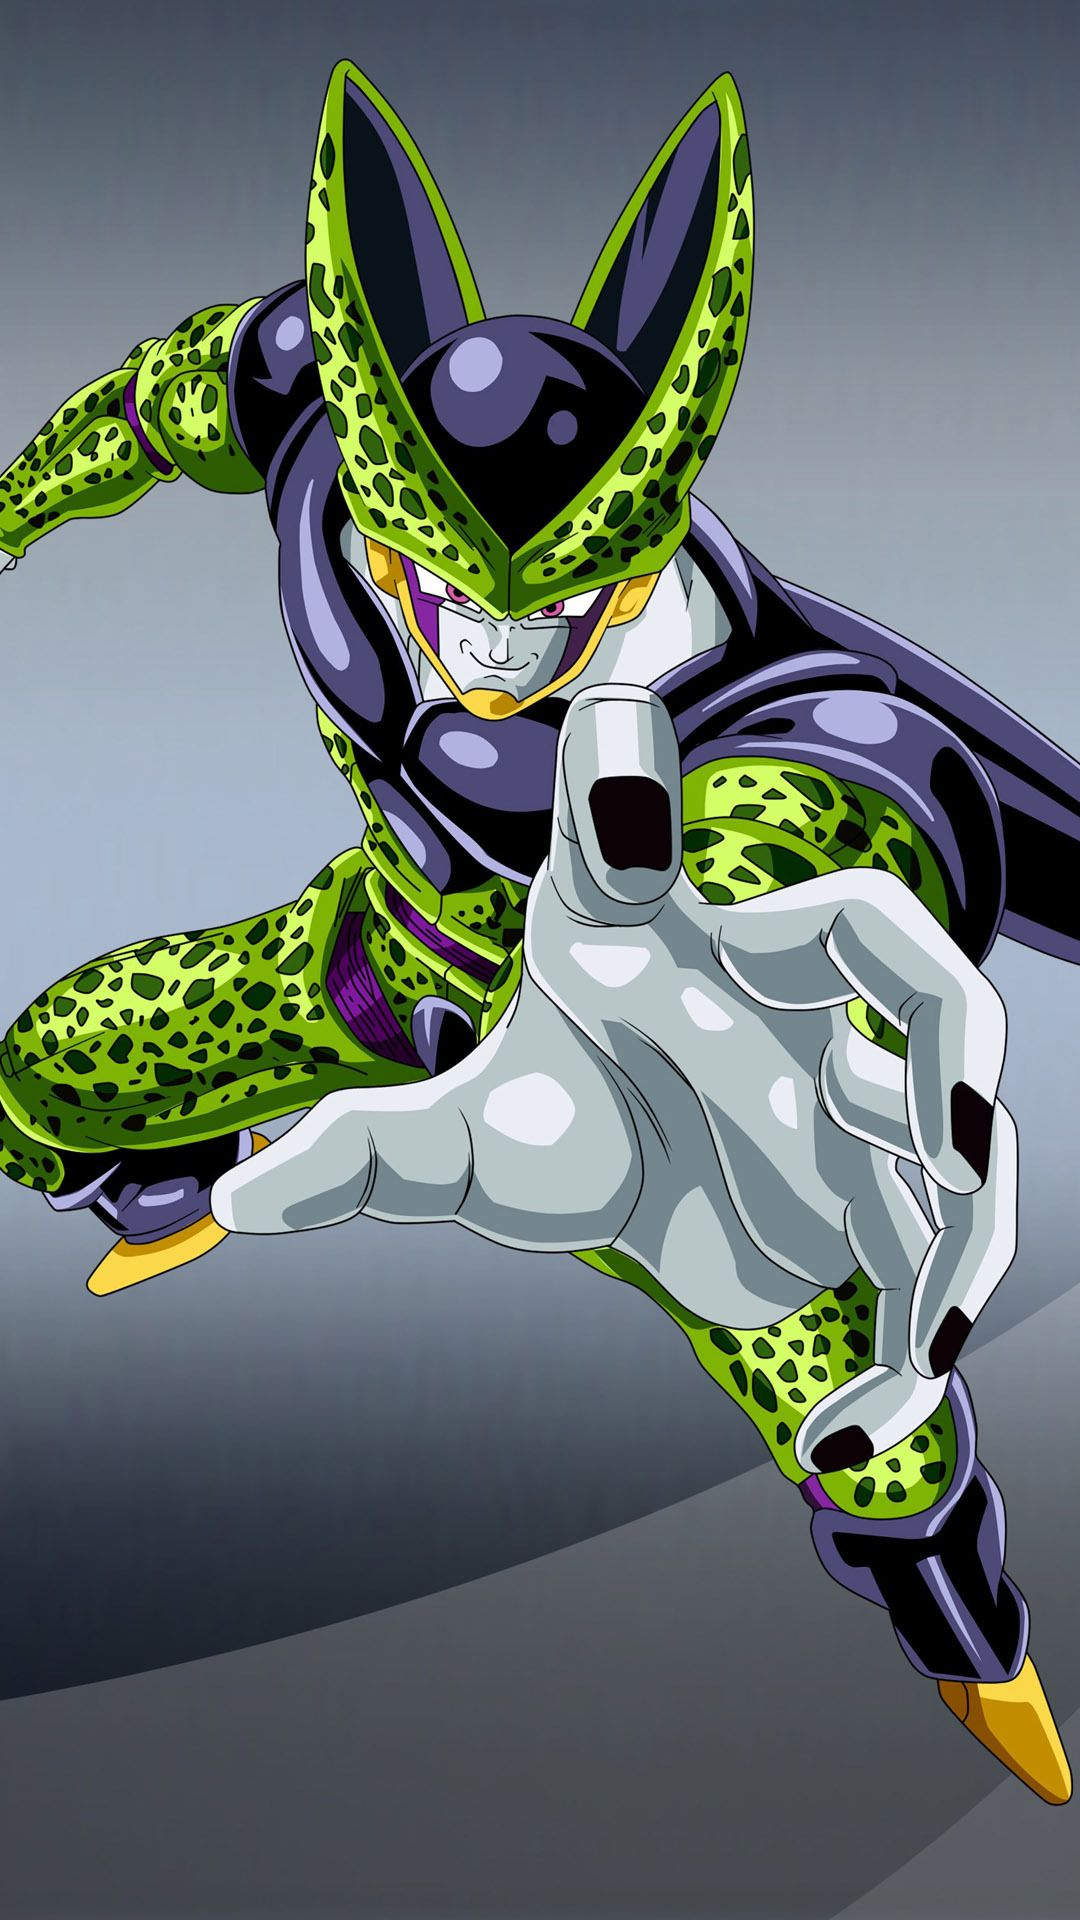 Cell dragon ball gt mobile wallpaper 12292 nothin but wallpaper pinterest dragon ball gt - Dragon ball z baby cell ...